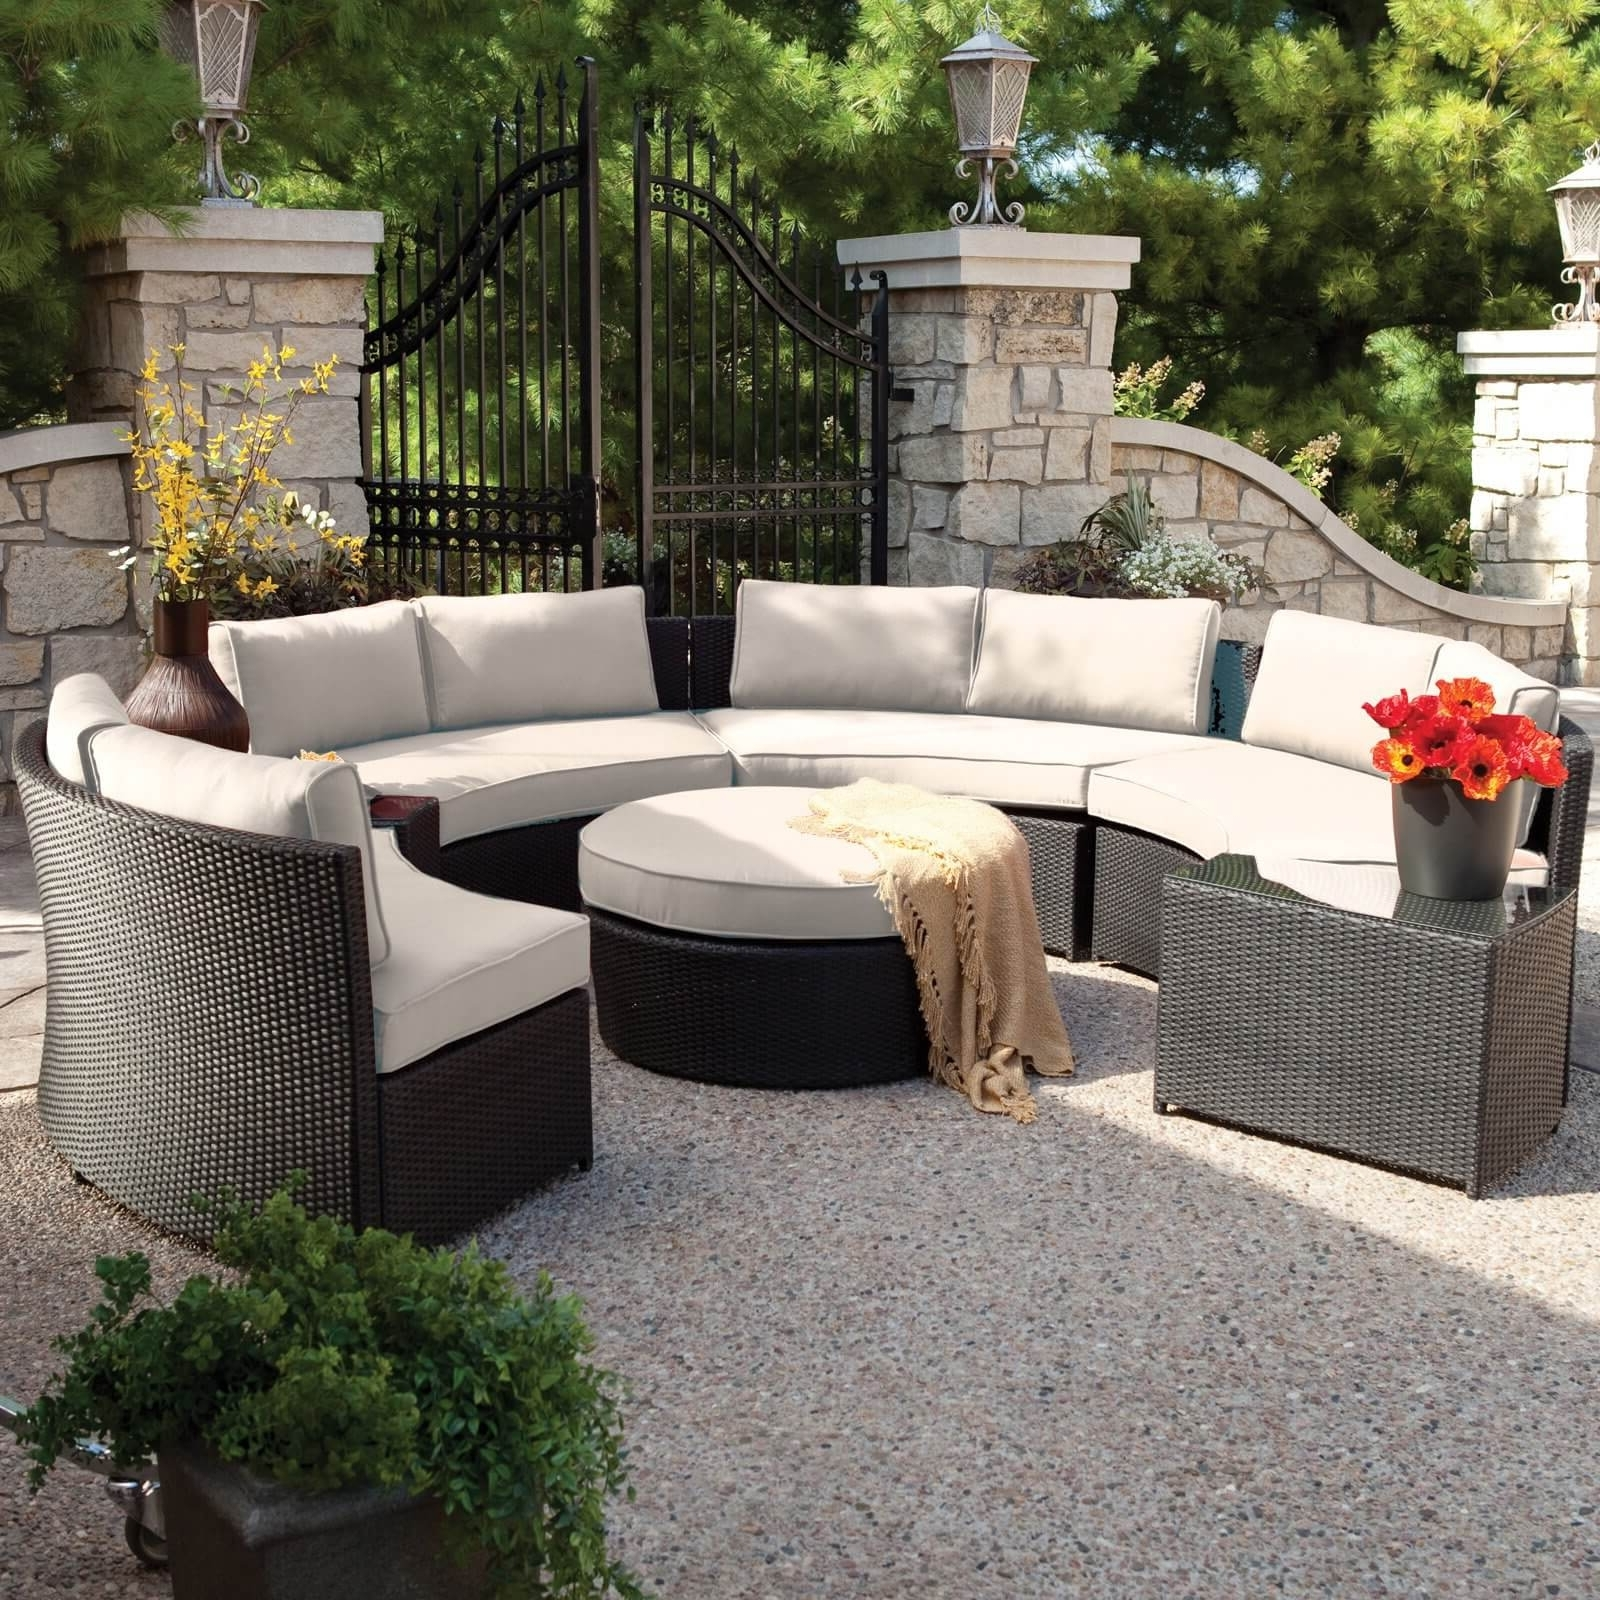 Most Popular Patio : Gray Veracruz Outdoor Sectional Sofa Outdoor Ideas Of White Throughout Conversation Patio Sets With Outdoor Sectionals (View 13 of 20)